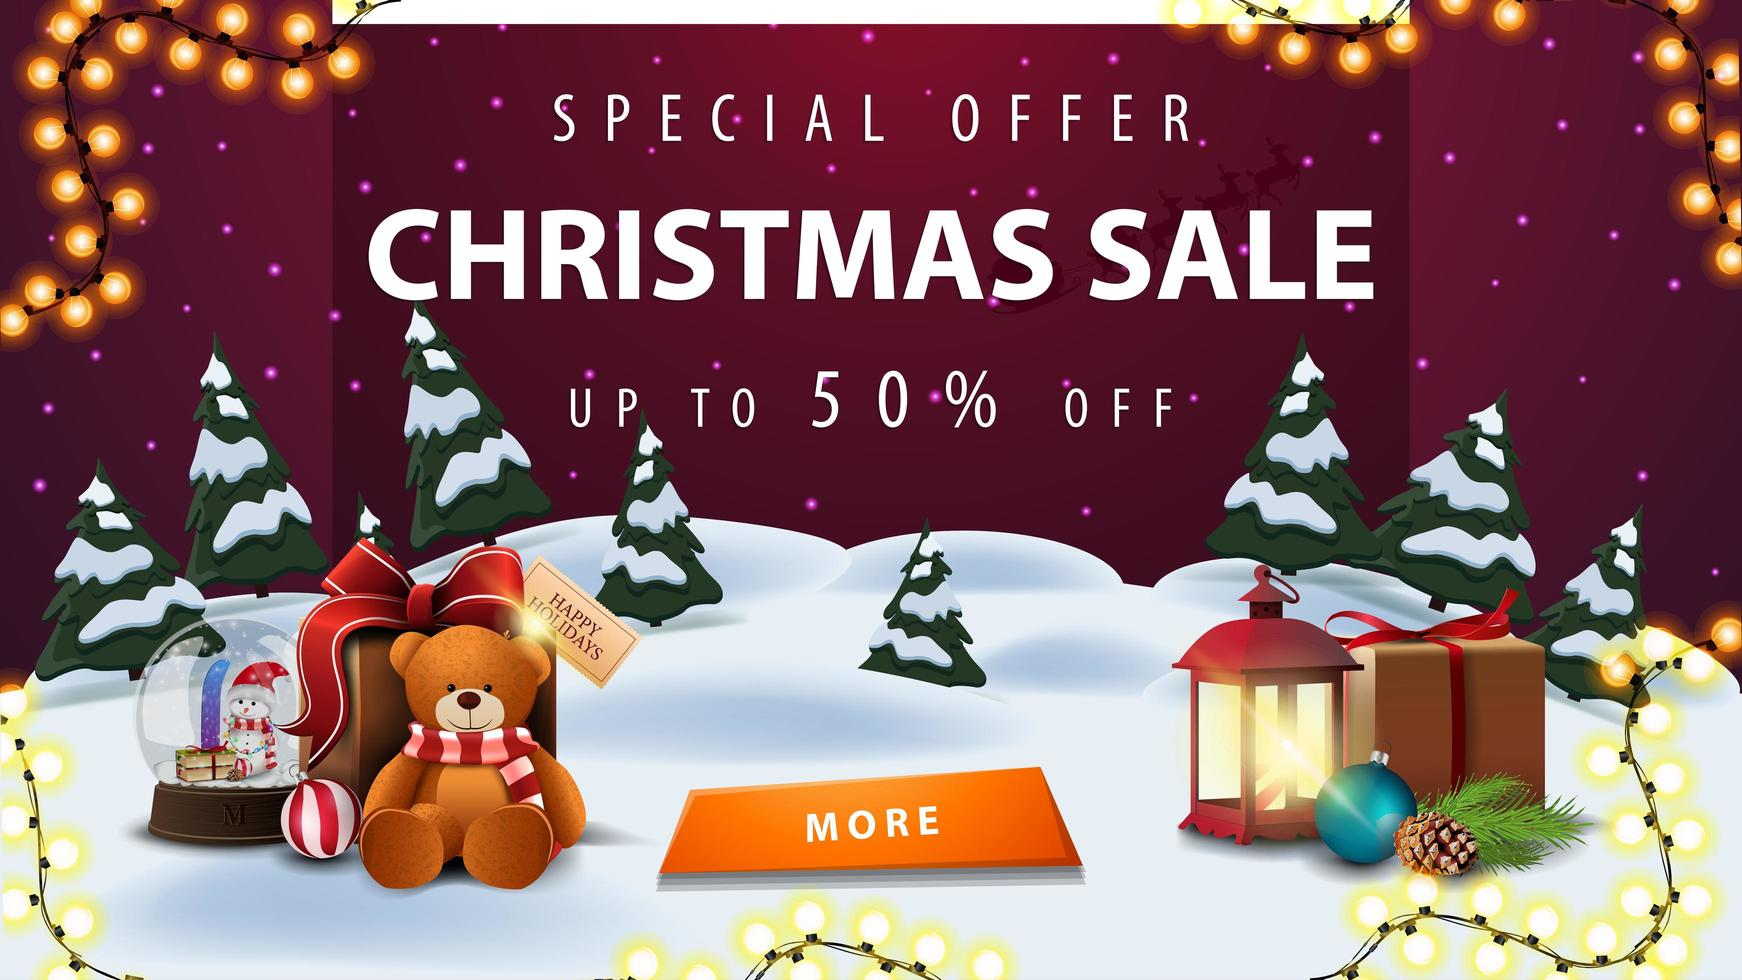 Special offer, Christmas sale, up to 50 off, discount banner with winter landscape, purple starry sky, garland, button, antique lamp, snow globe and present with Teddy bear vector